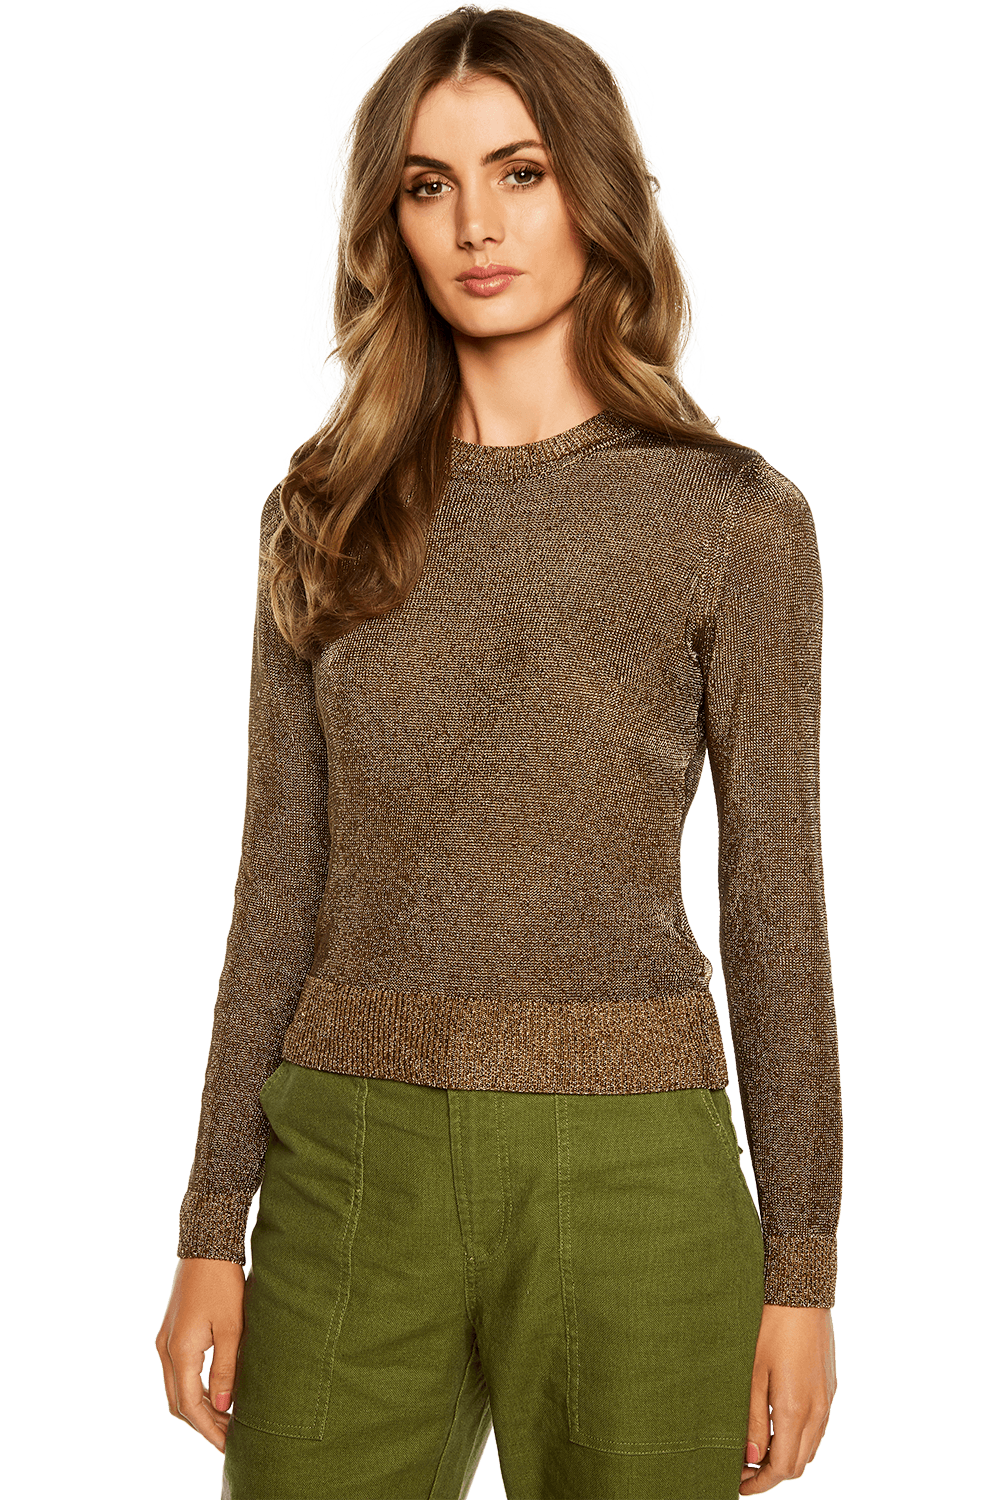 METALLIC LONG SLEEVE KNIT in colour SILVER